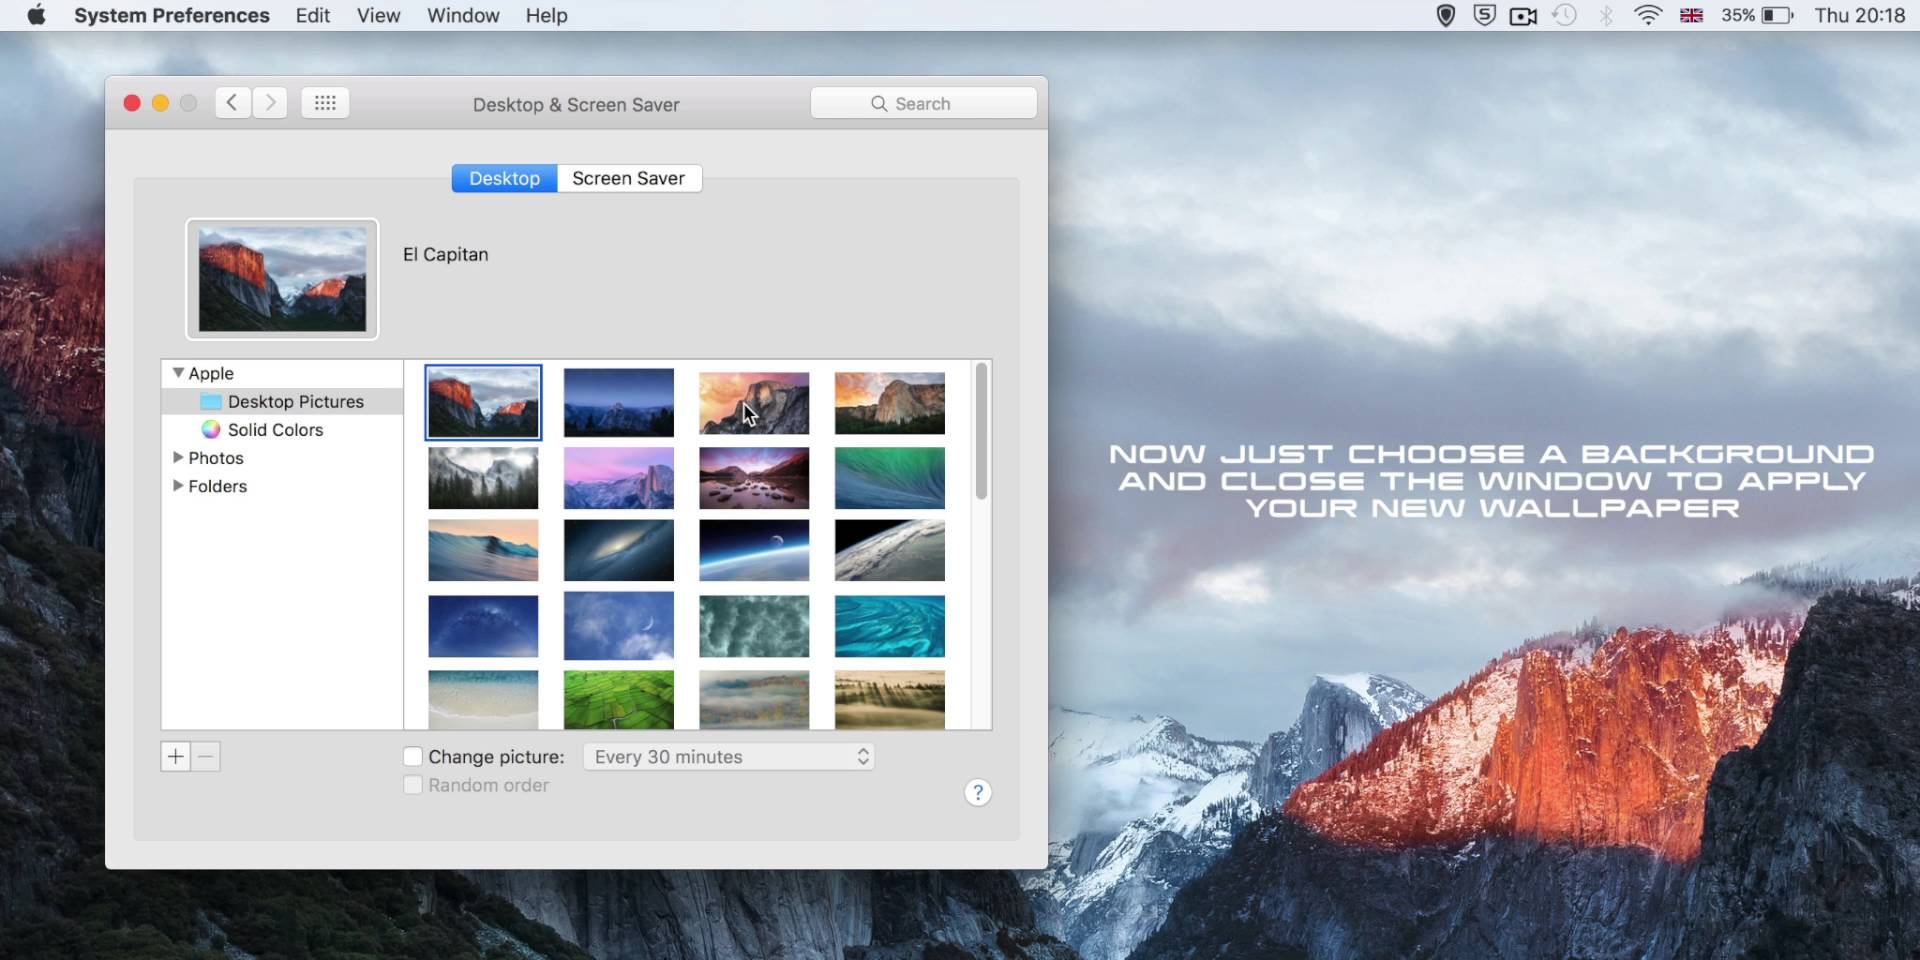 How To Change The Wallpaper On A Mac